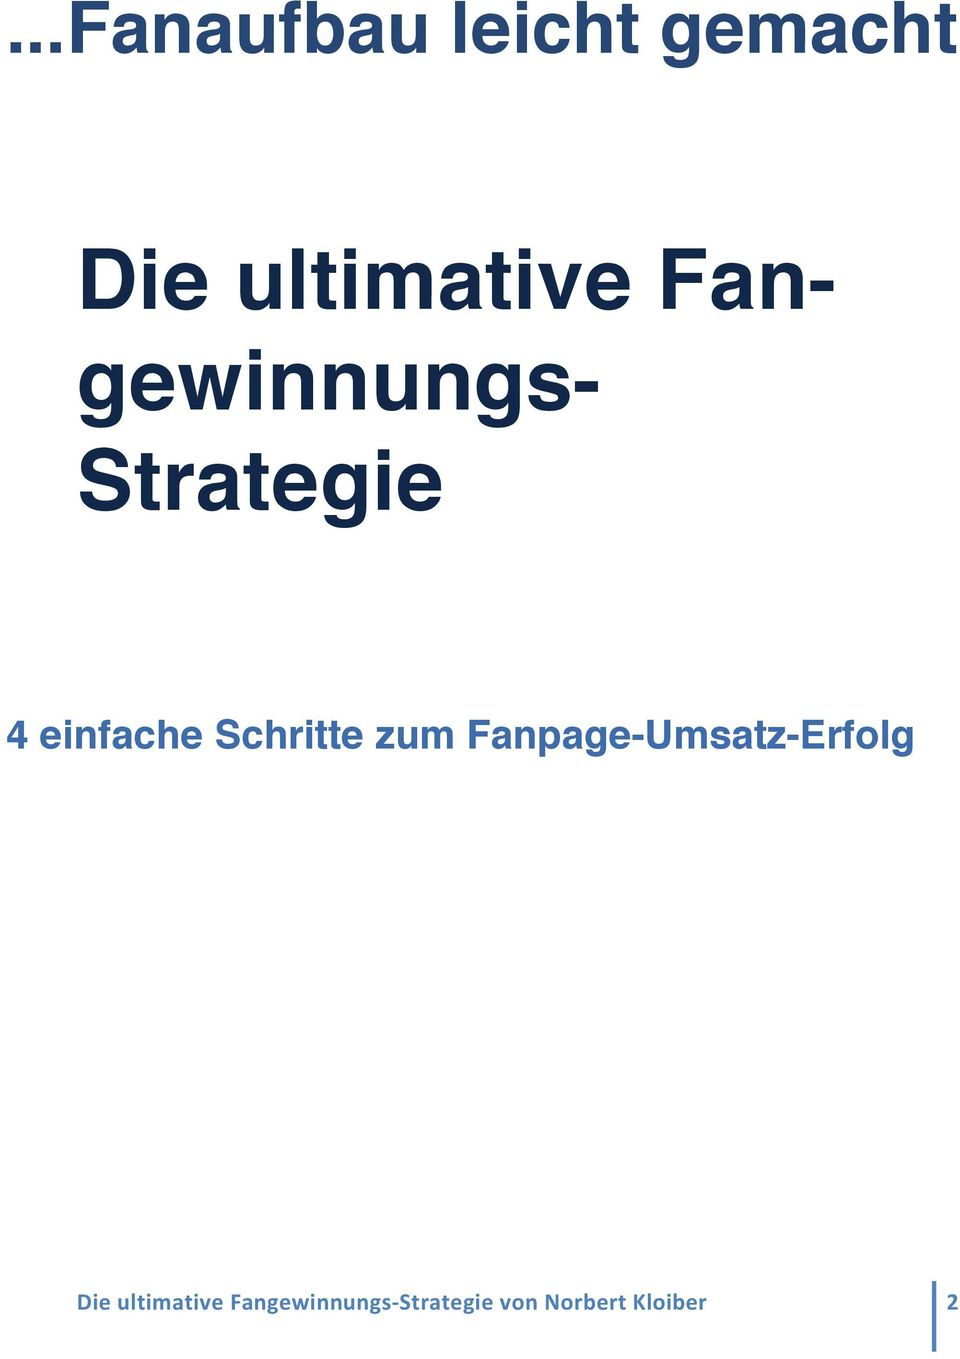 gewinnungs- Strategie 4